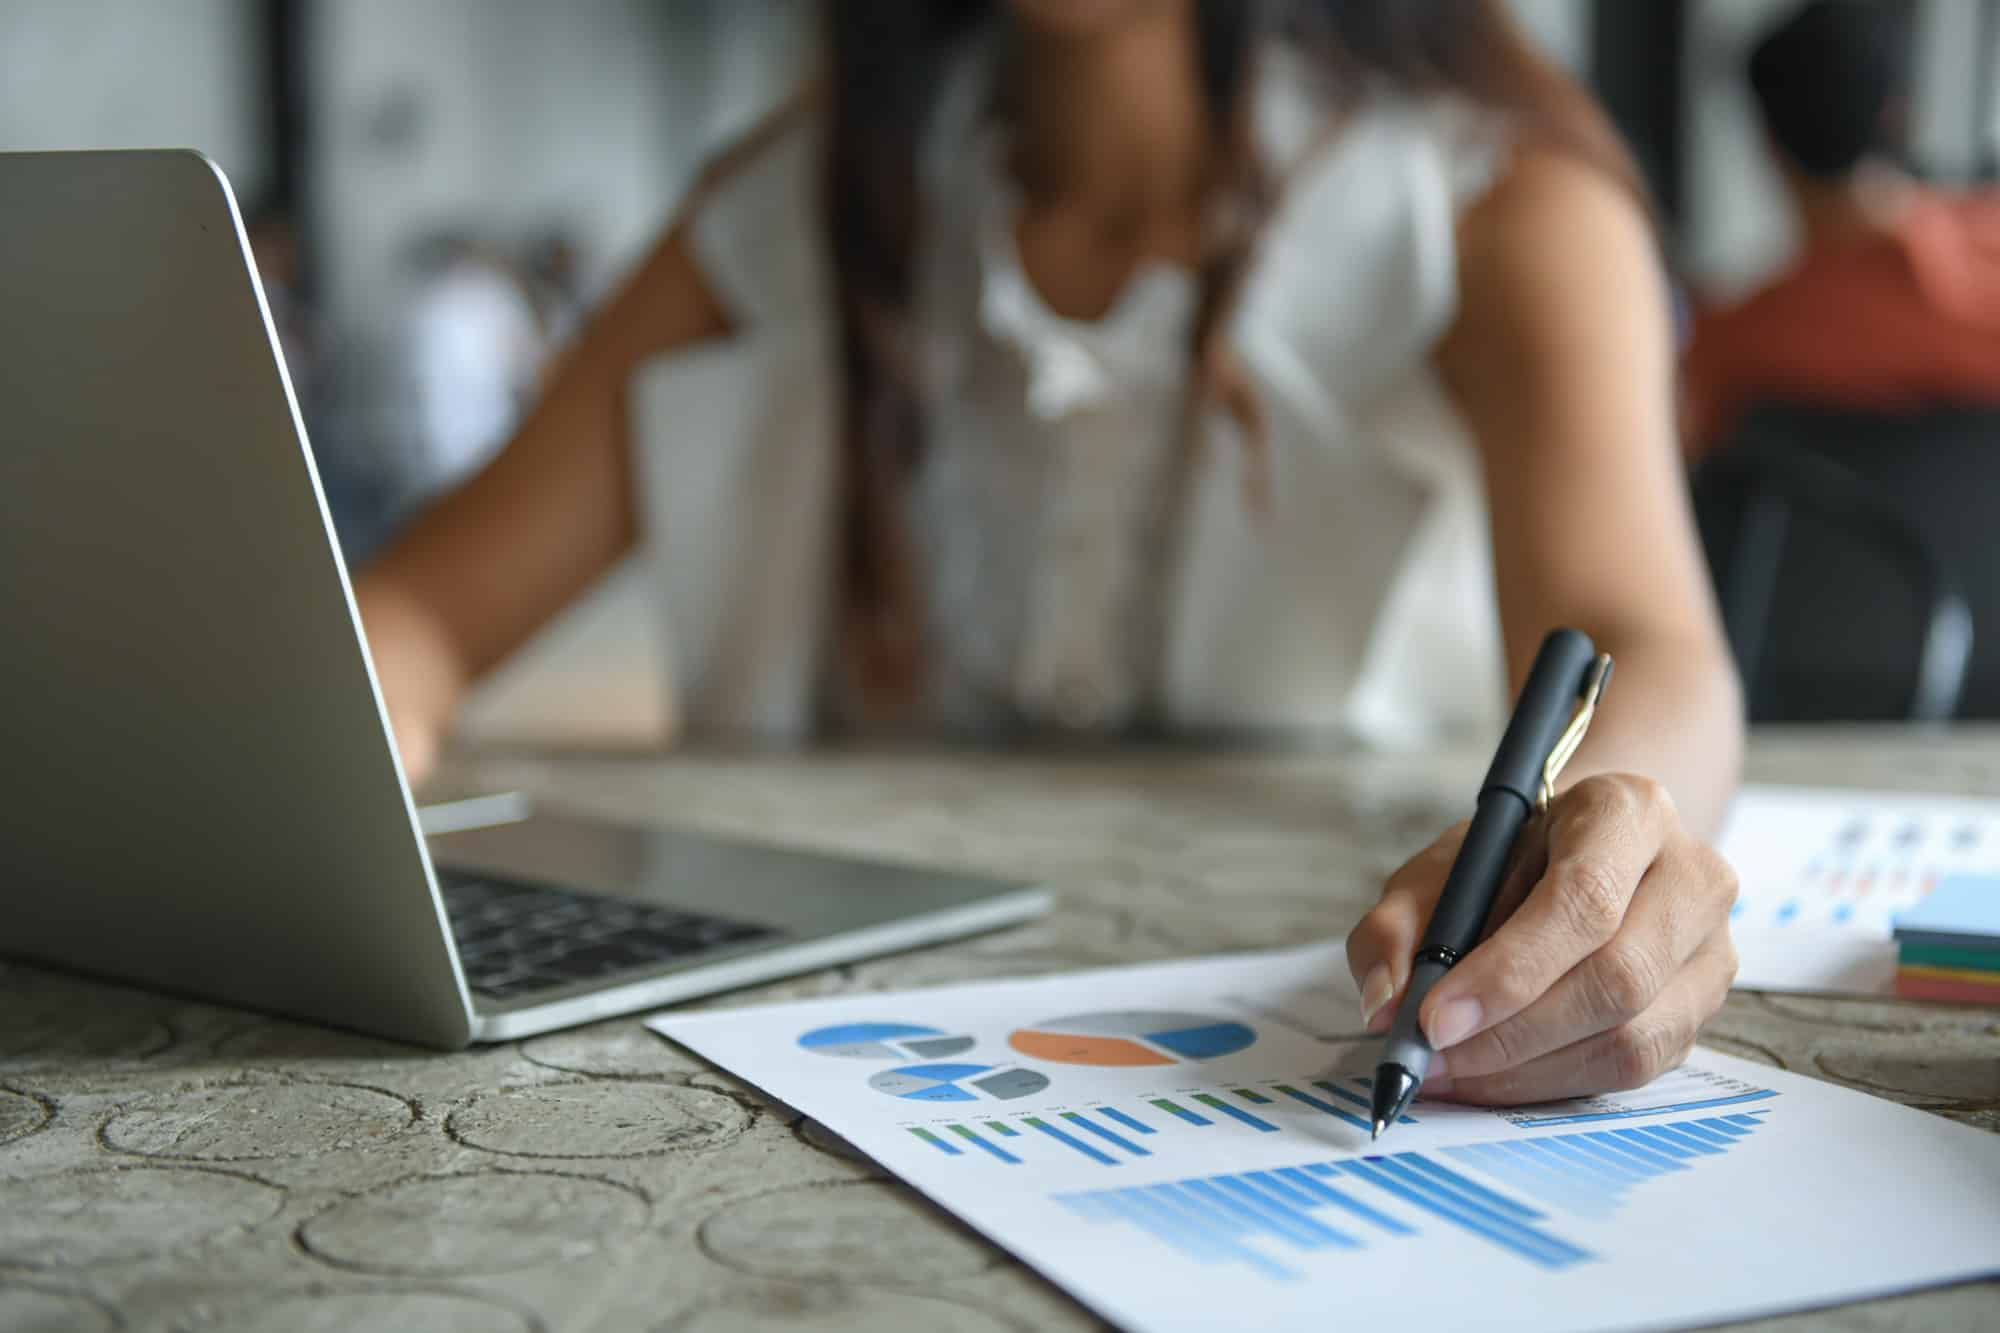 hand of a businesswoman is holding a pen pointing at the graph and using a laptop